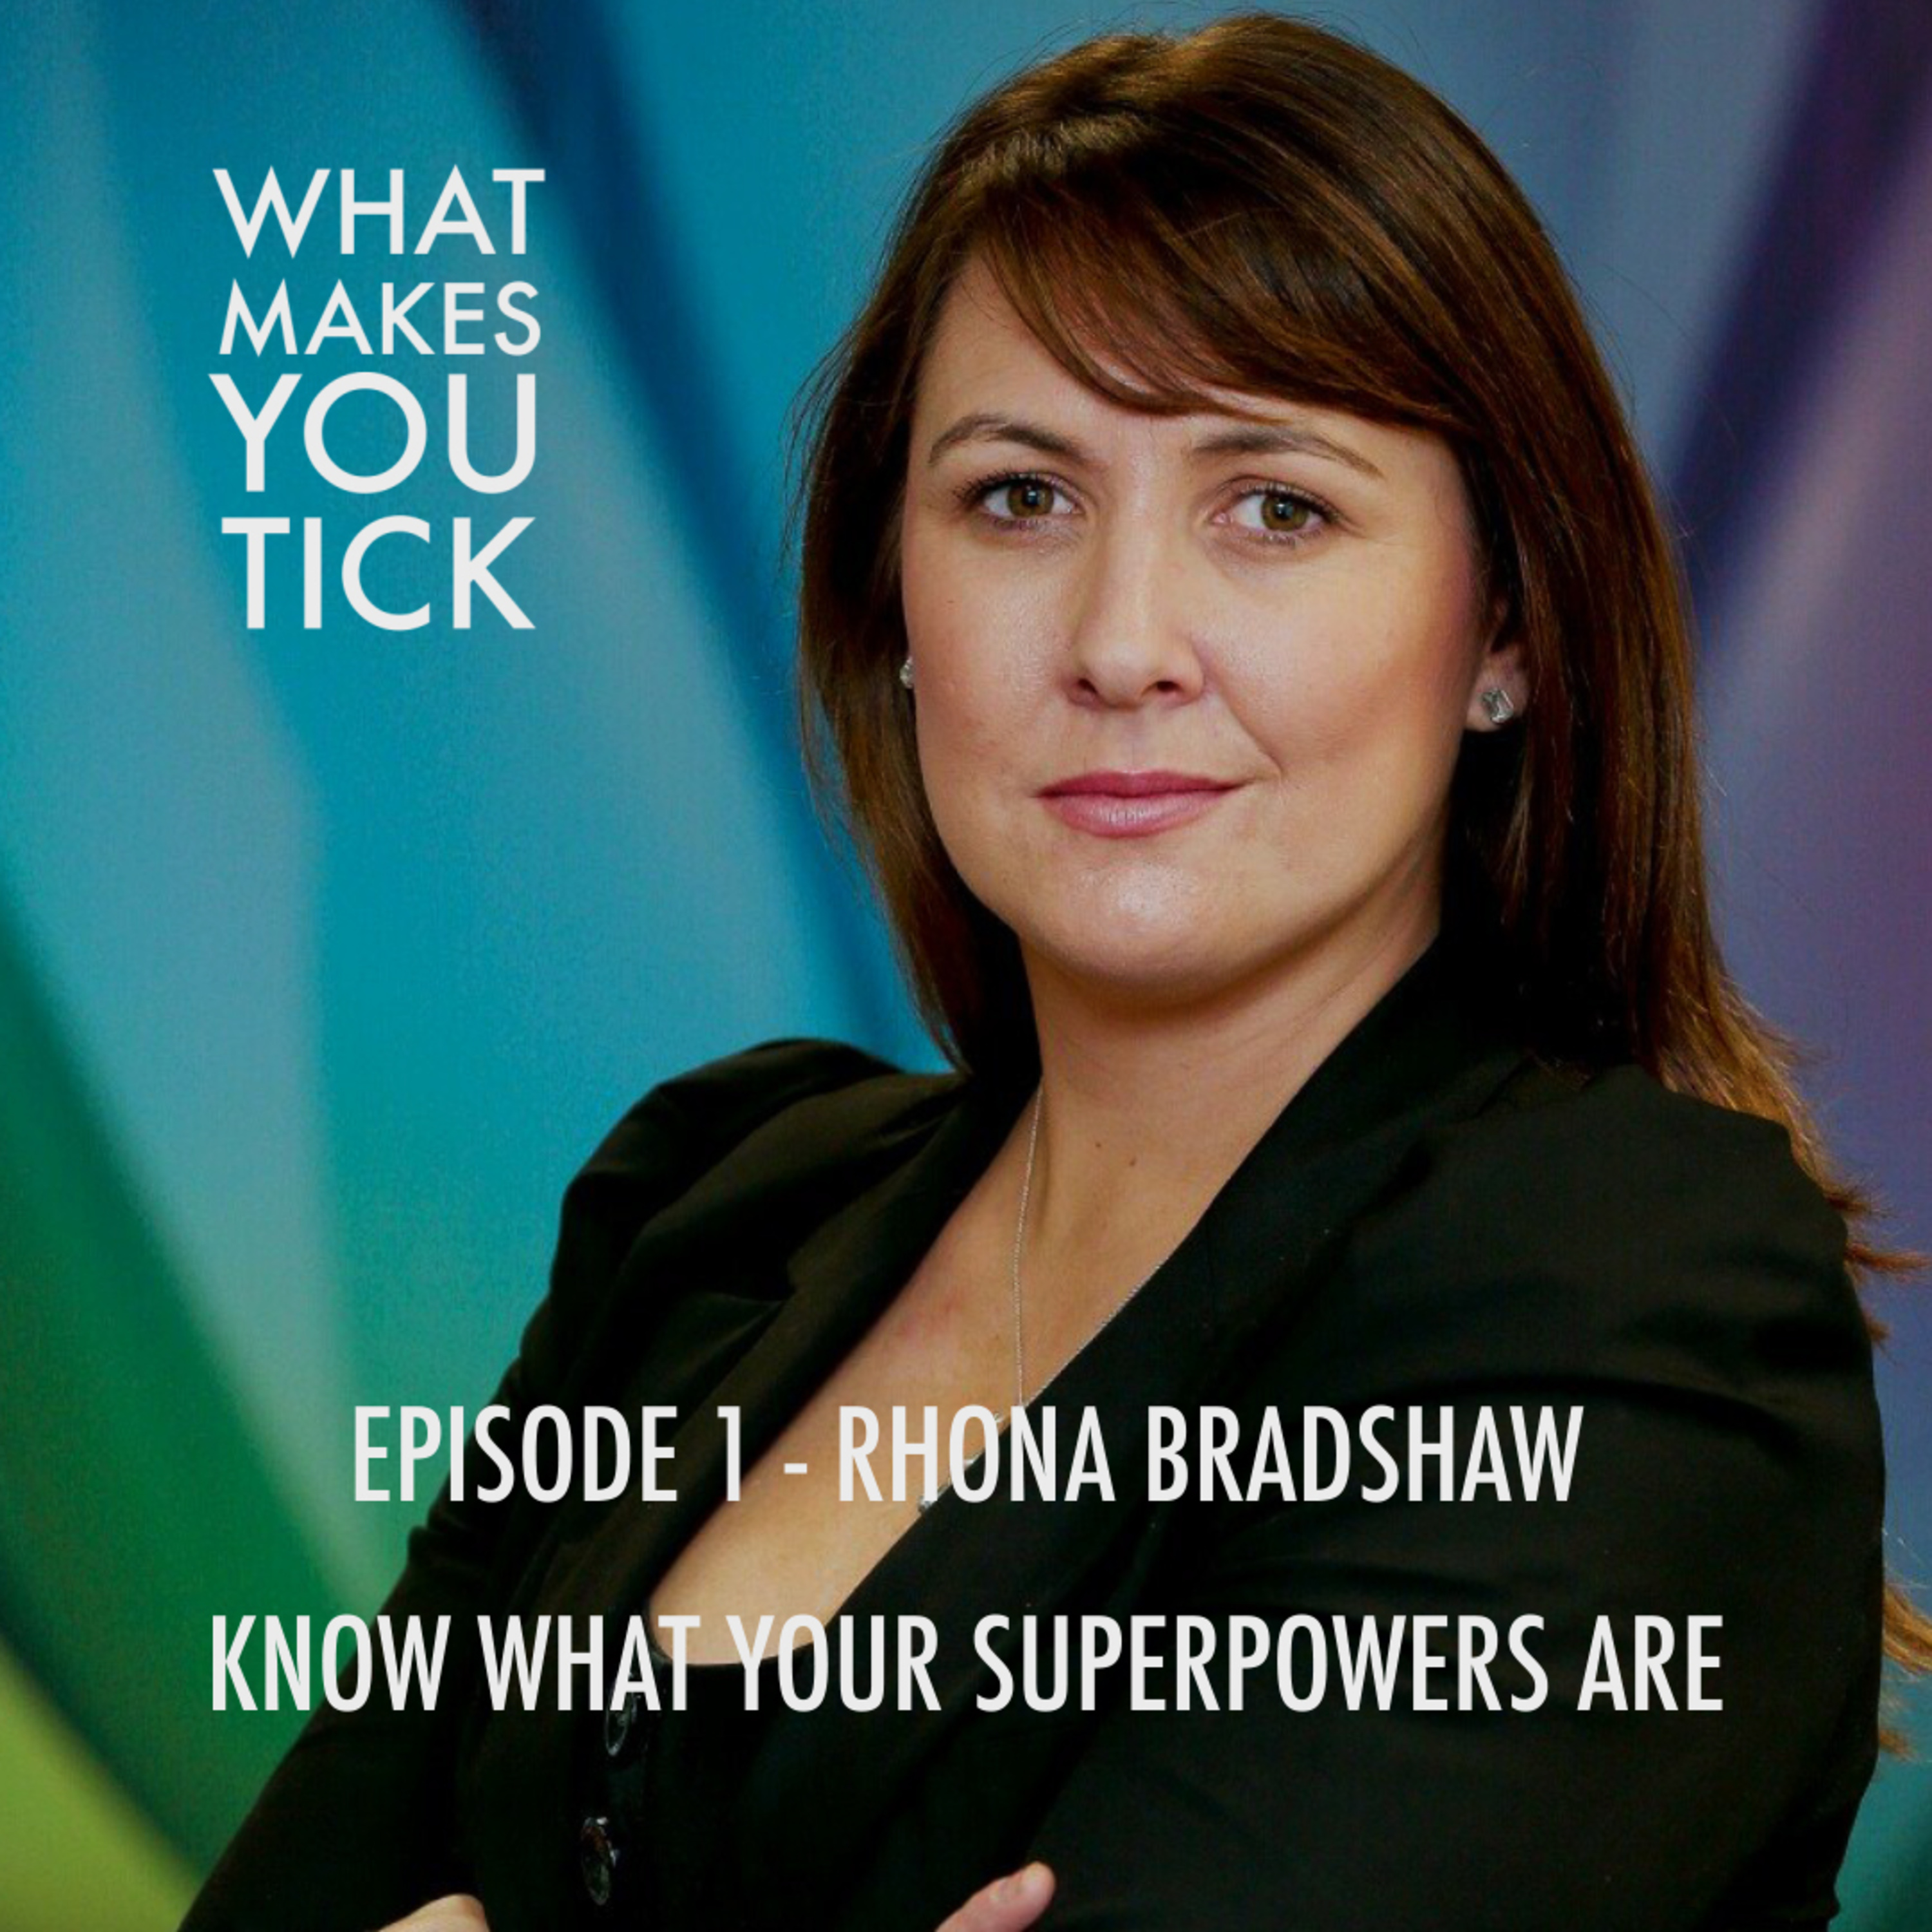 Episode 1 - Know what your super powers are